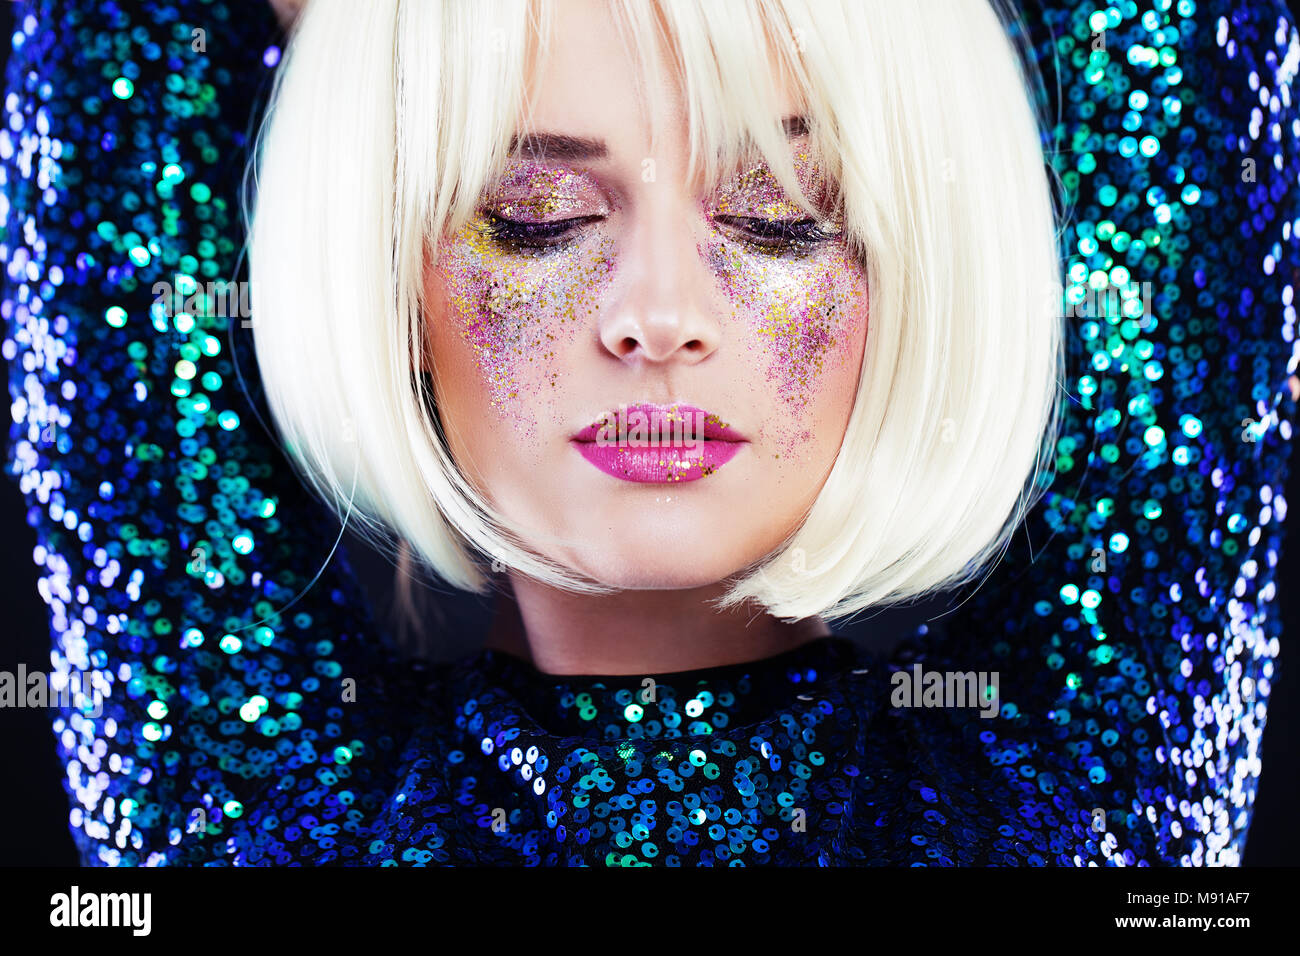 Beautiful Blonde Woman with Party Glitters Makeup Stock Photo